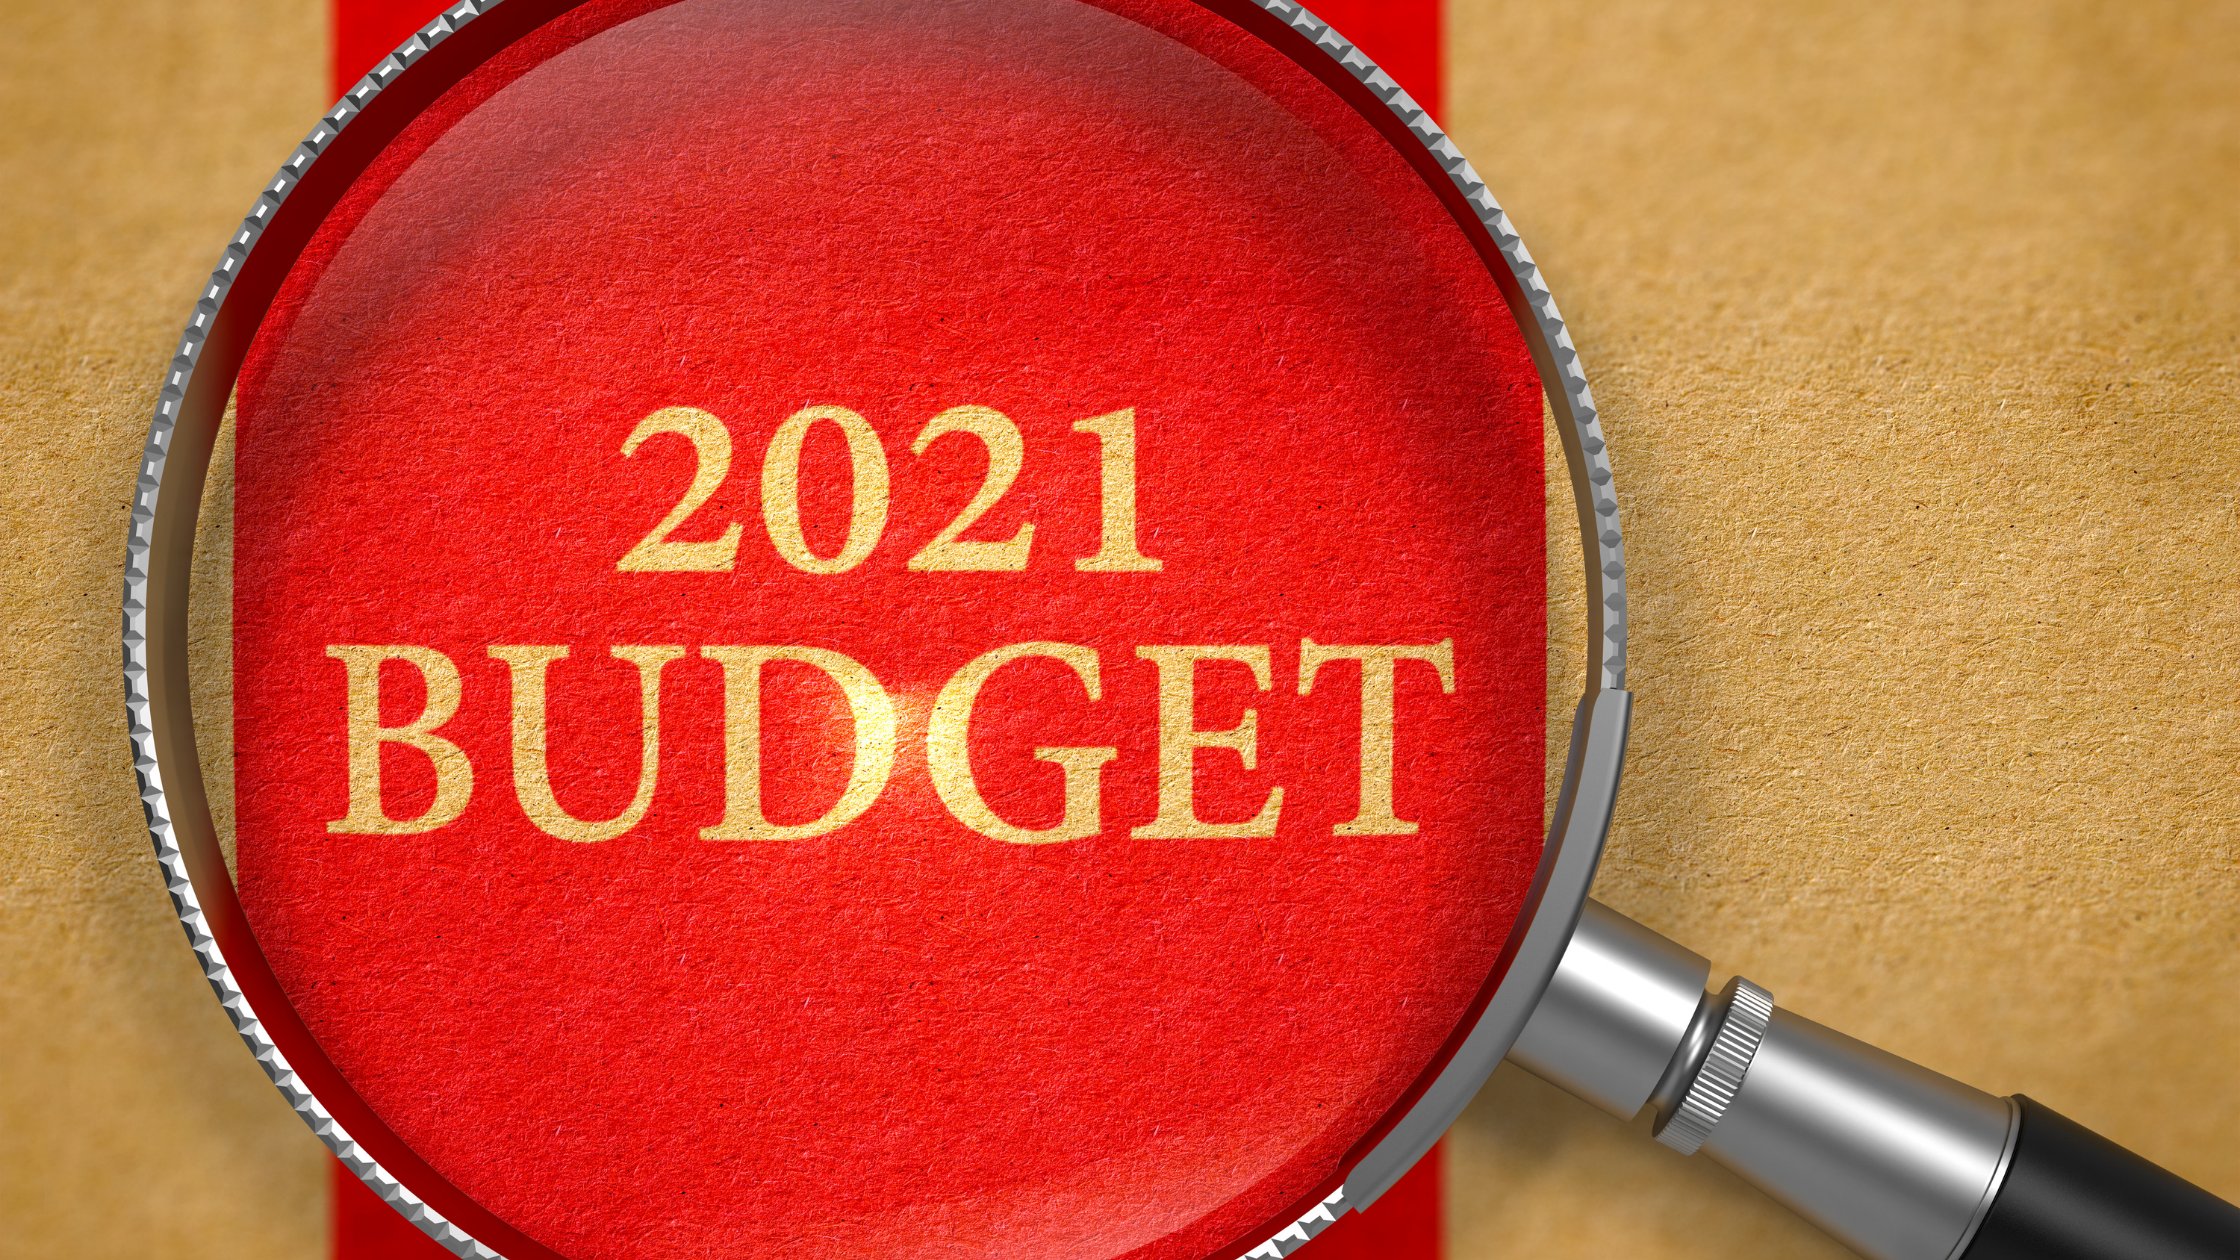 The 2021 Budget: What it Means for Property Investors